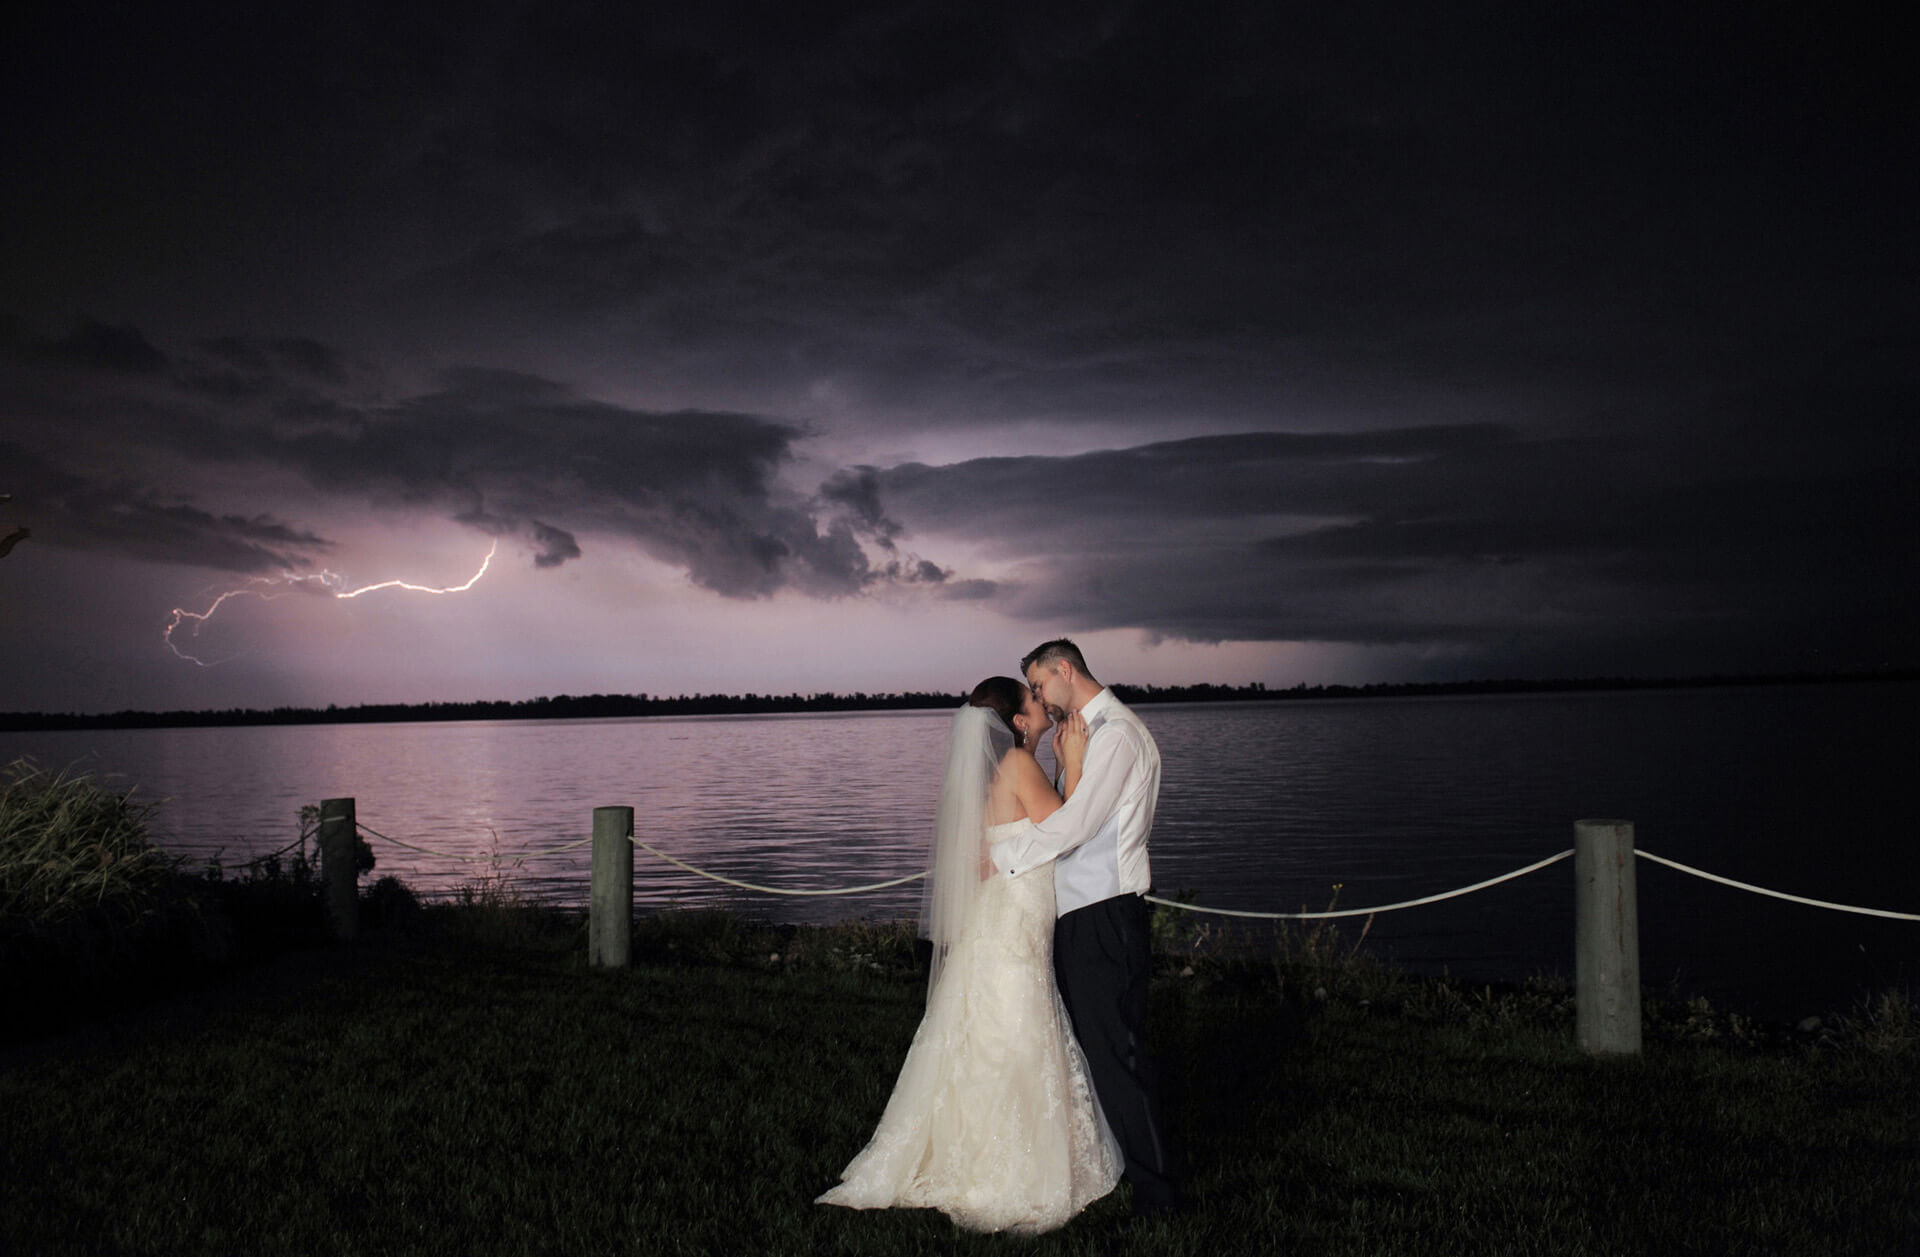 Creating and capitalizing on incredible moments, like this lightening strike during a wedding on the Detroit River is part of what makes me the best, most popular wedding photographer in Detroit, Michigan.